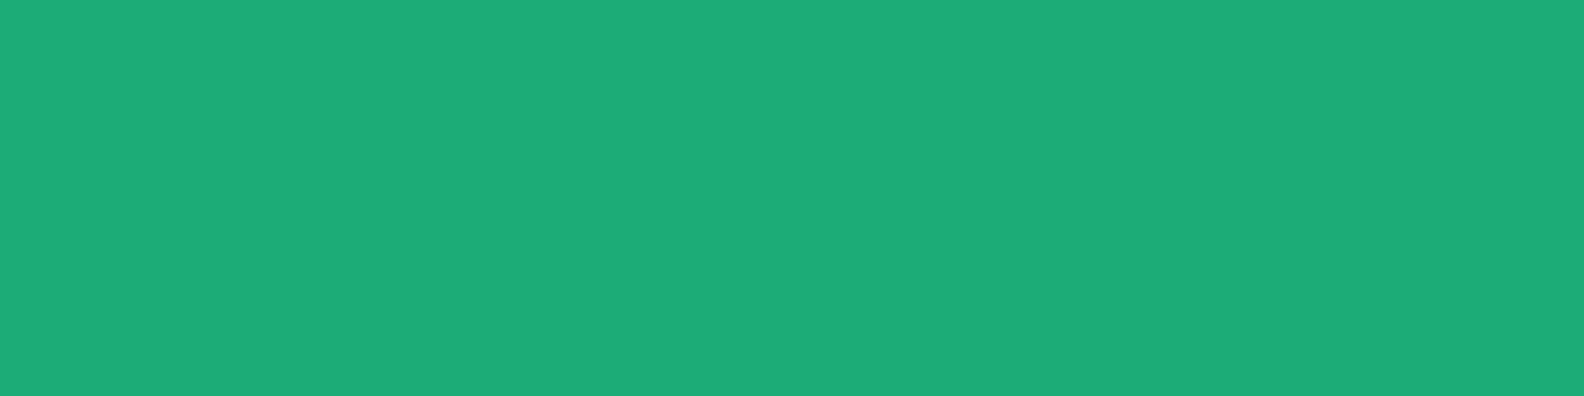 1584x396 Green Crayola Solid Color Background